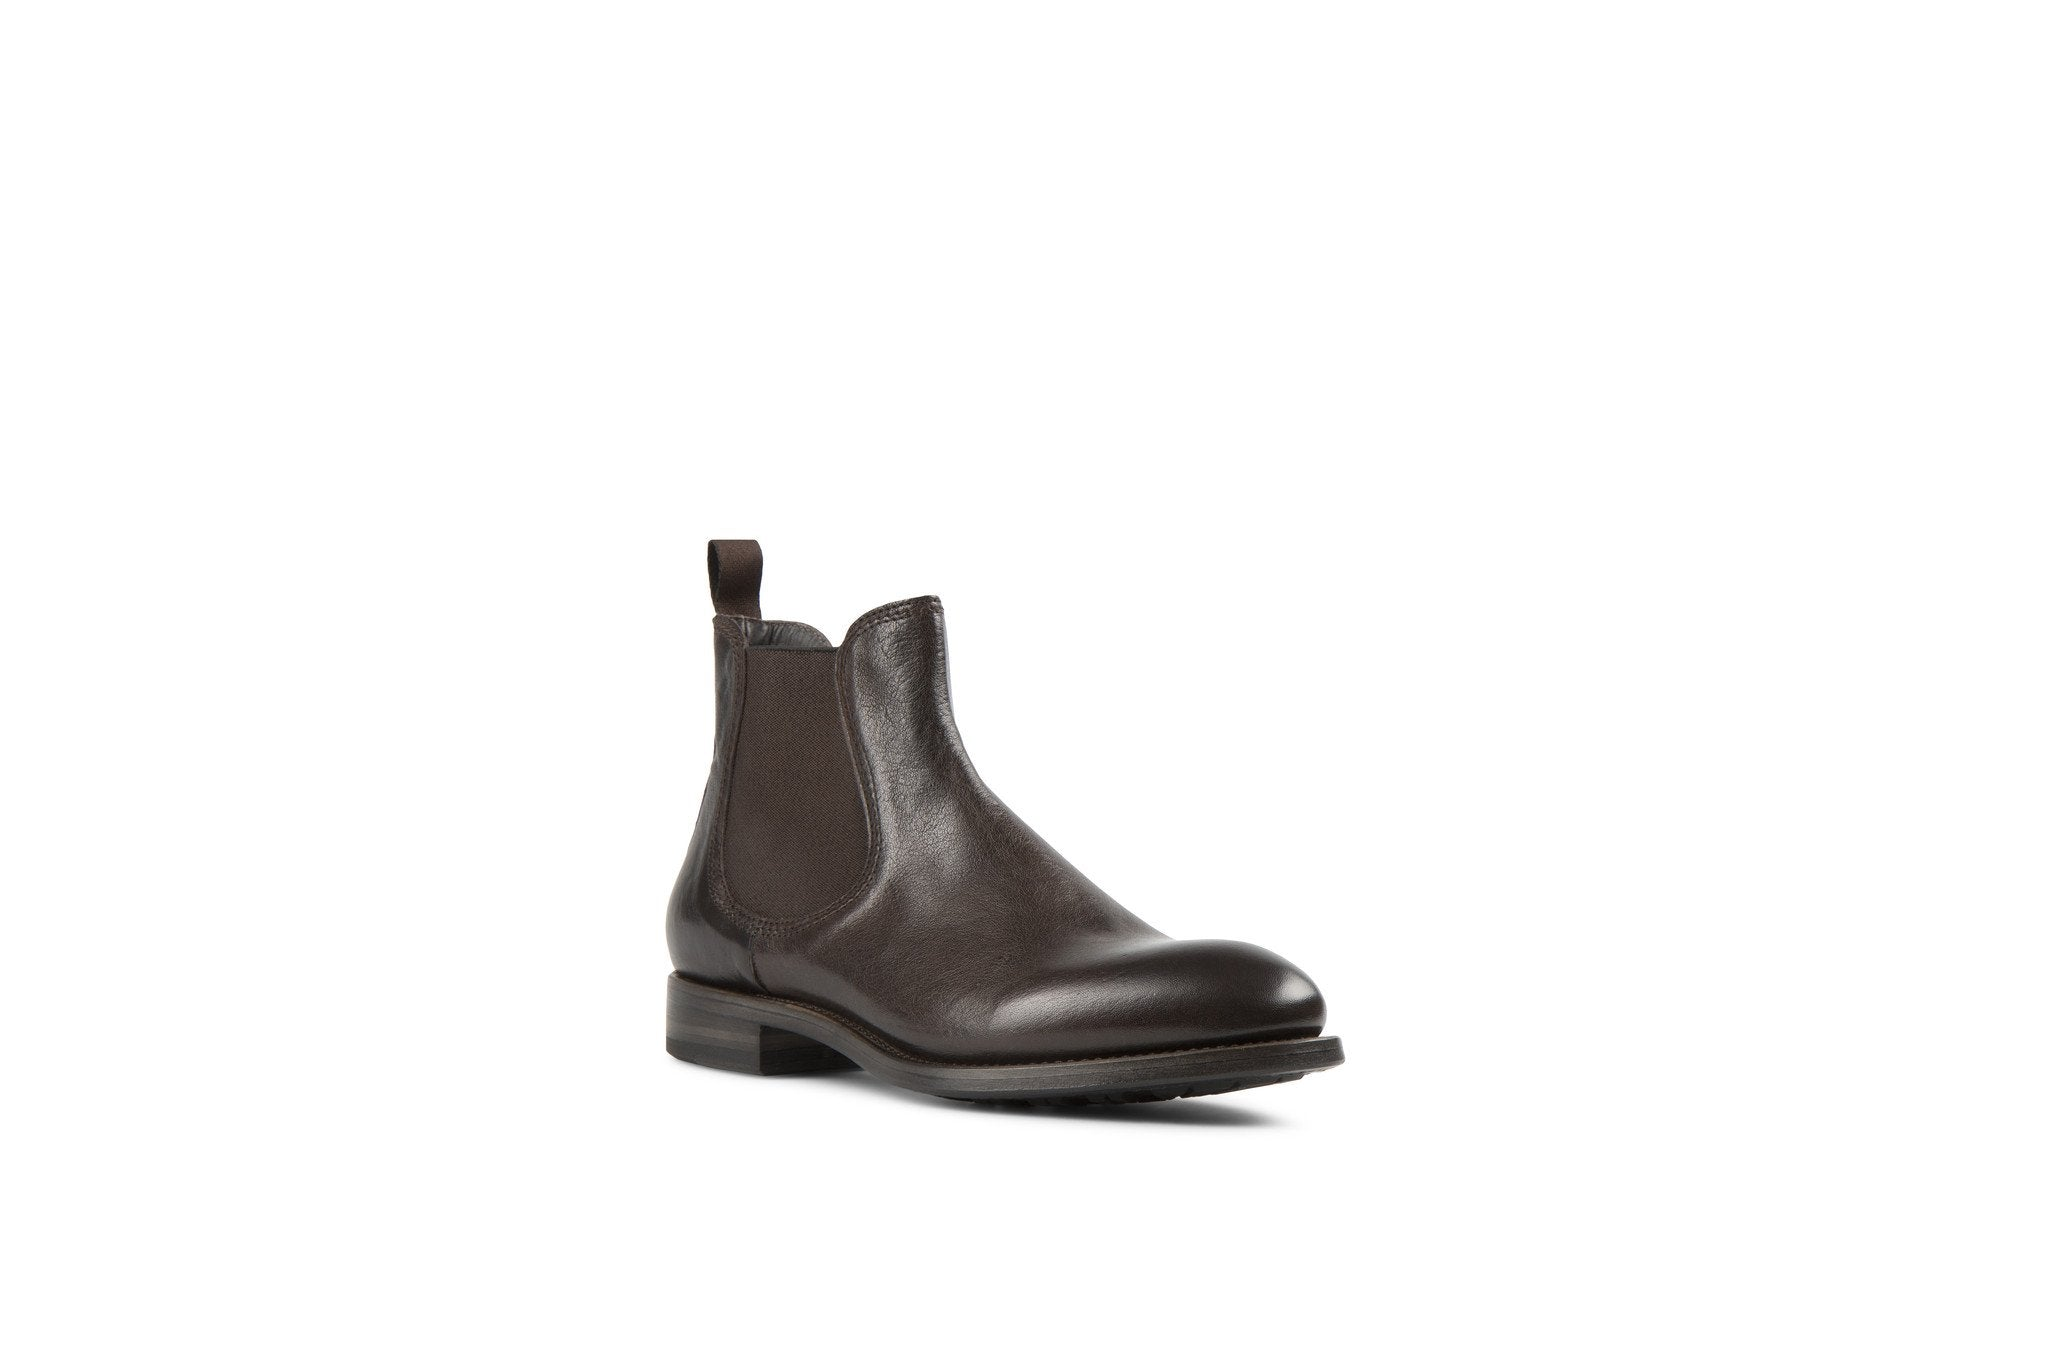 Hanoi Dark Brown Kangaroo Leather Chelsea Boots